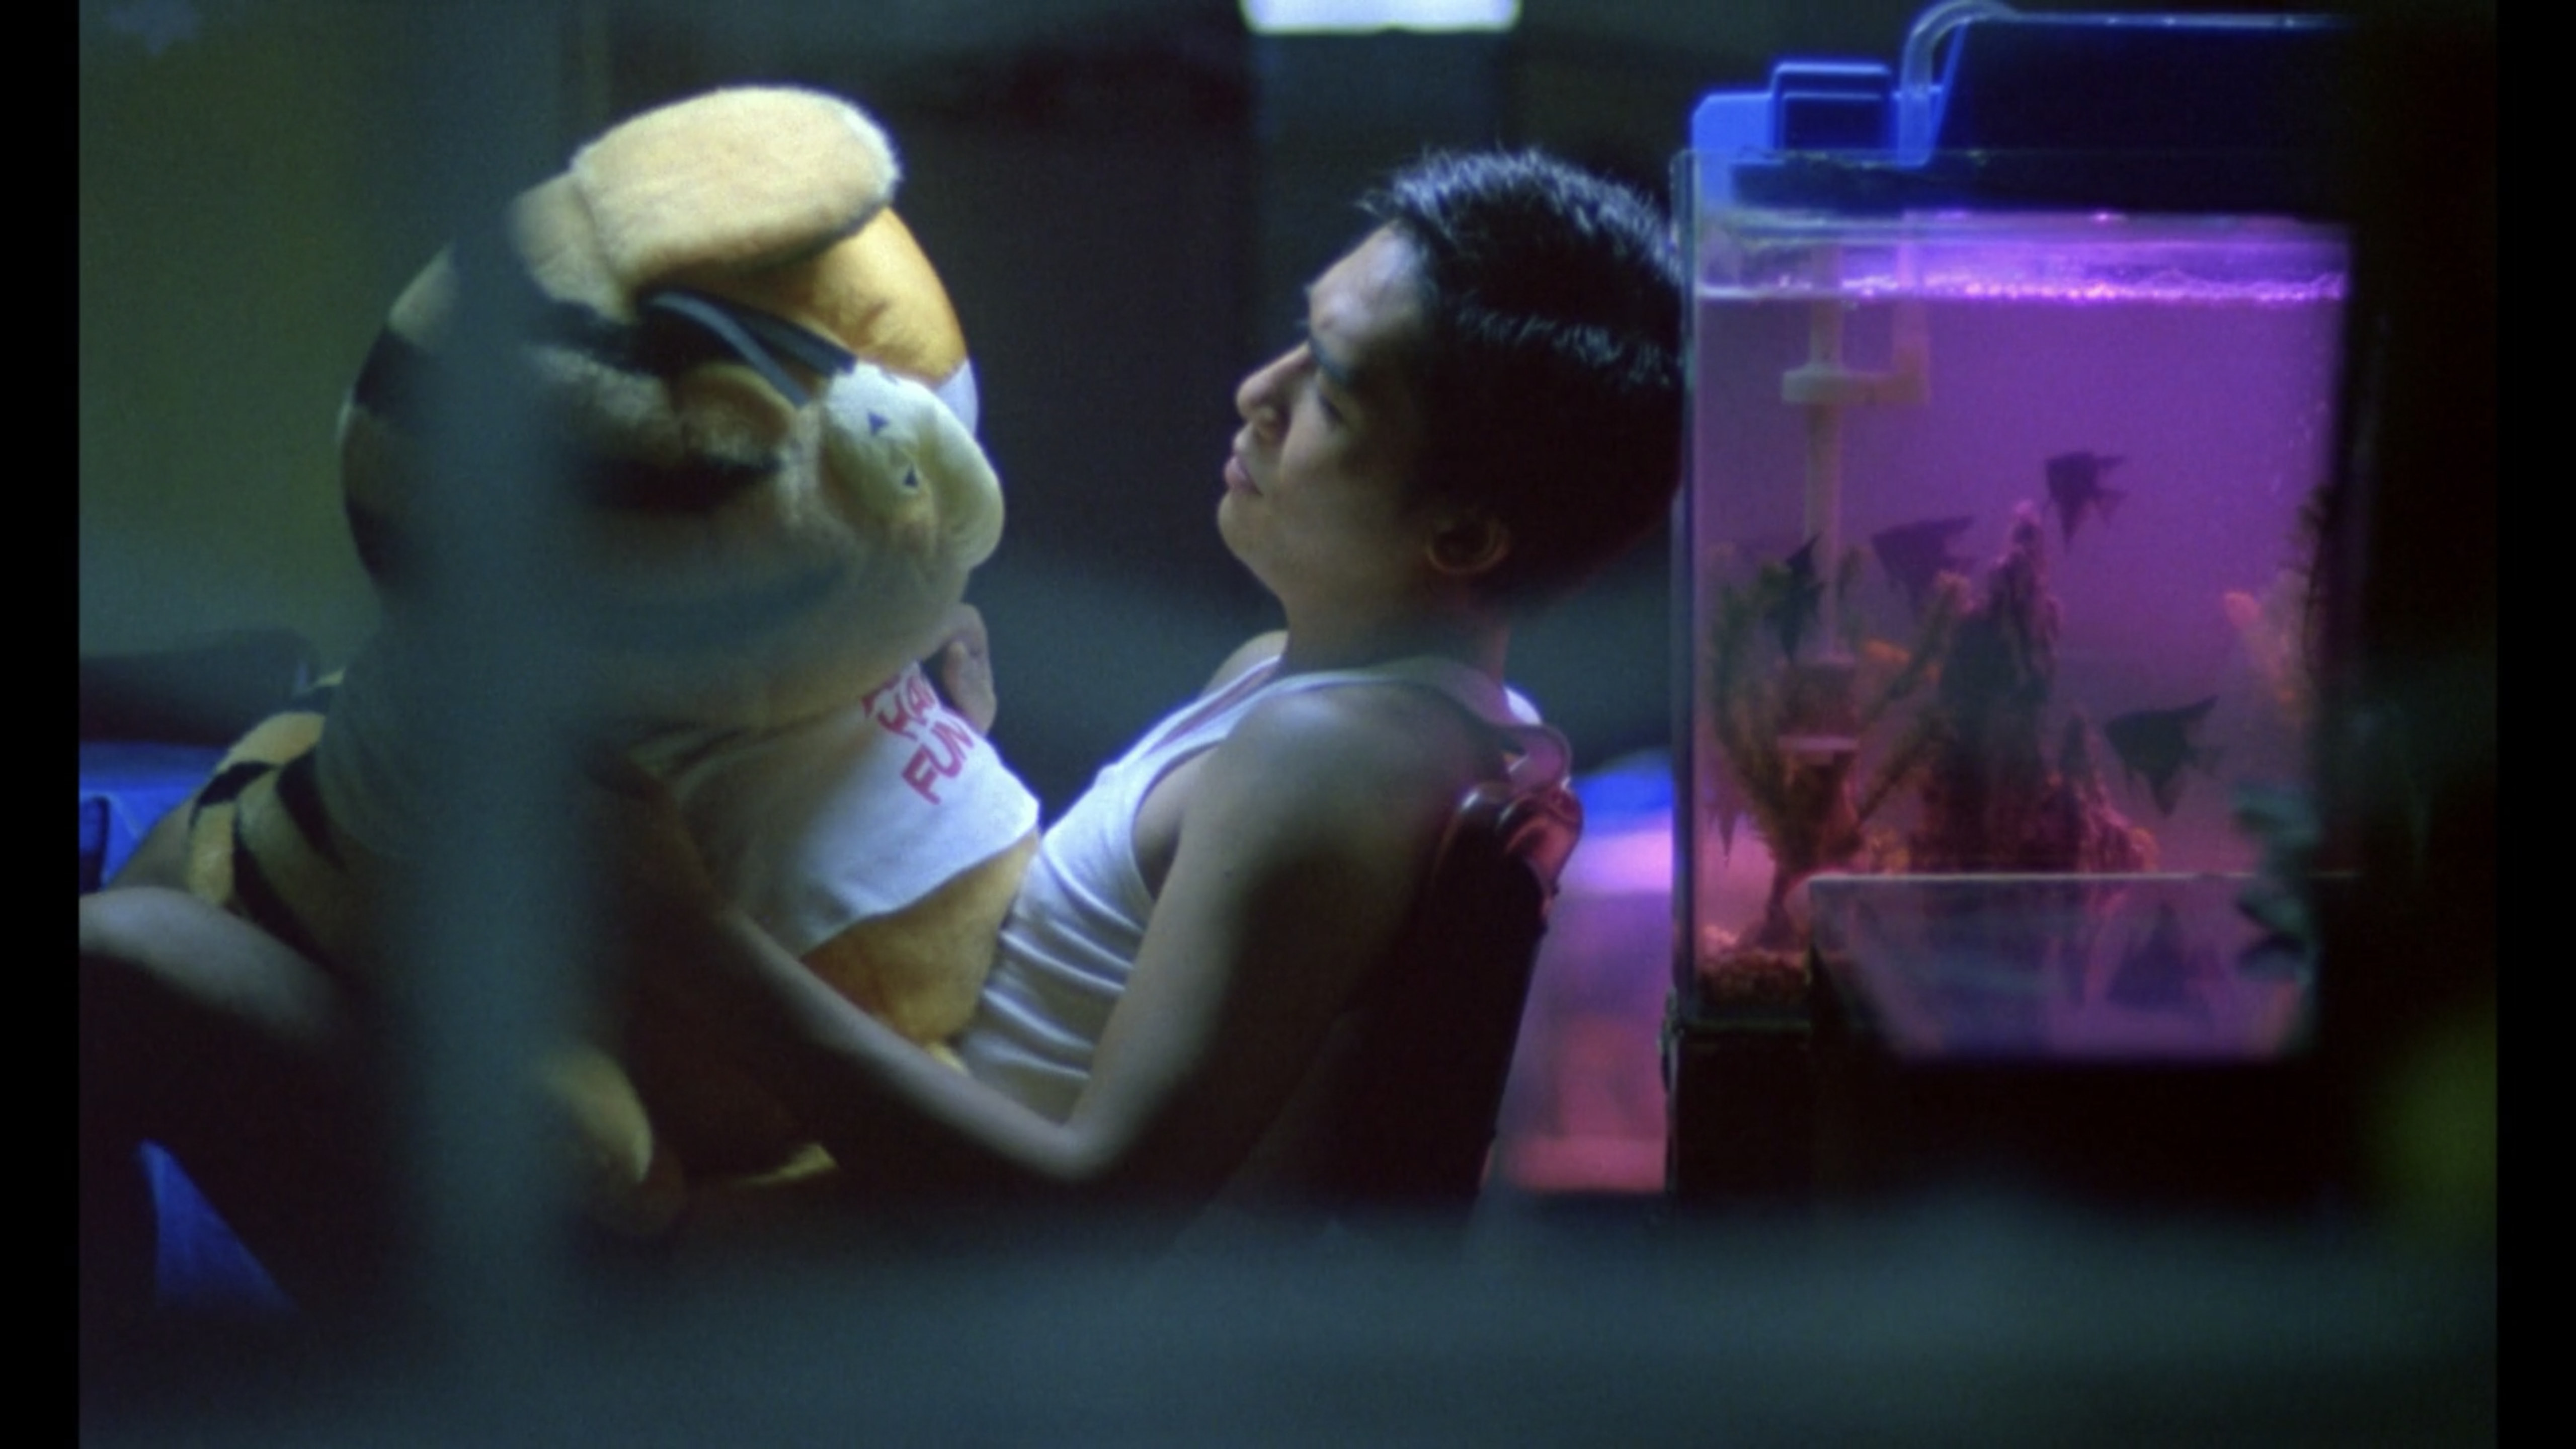 Cop 663 sits with his Garfield stuffed animal in Chungking Express